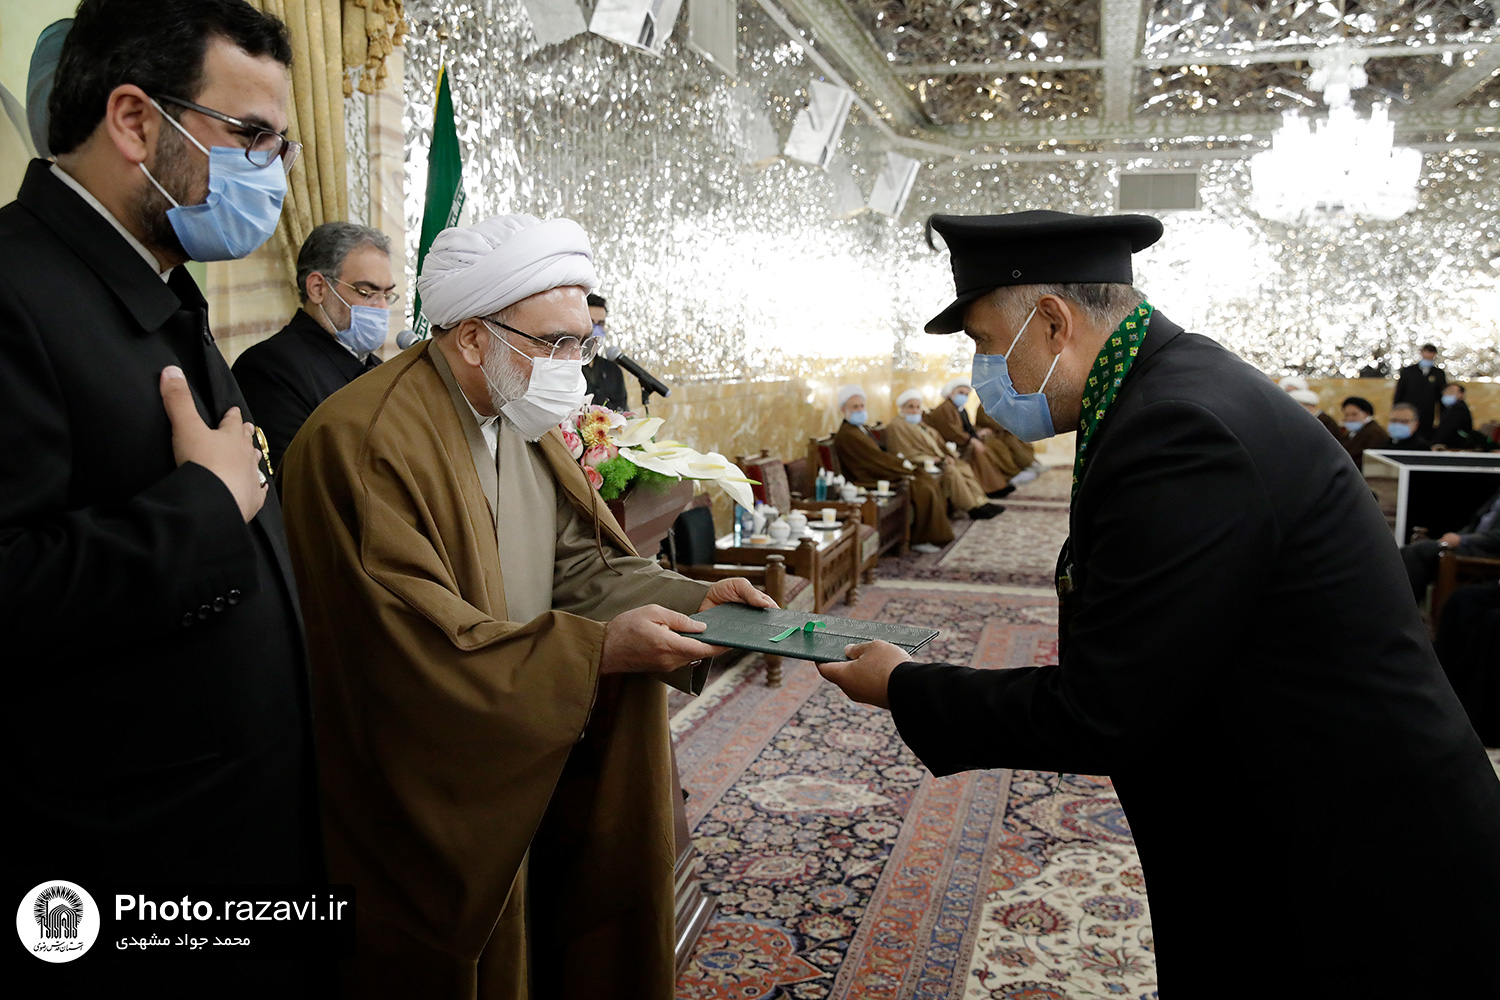 Confer of Razavi Servants' Decrees by Grand Custodian of Astan Quds Razavi